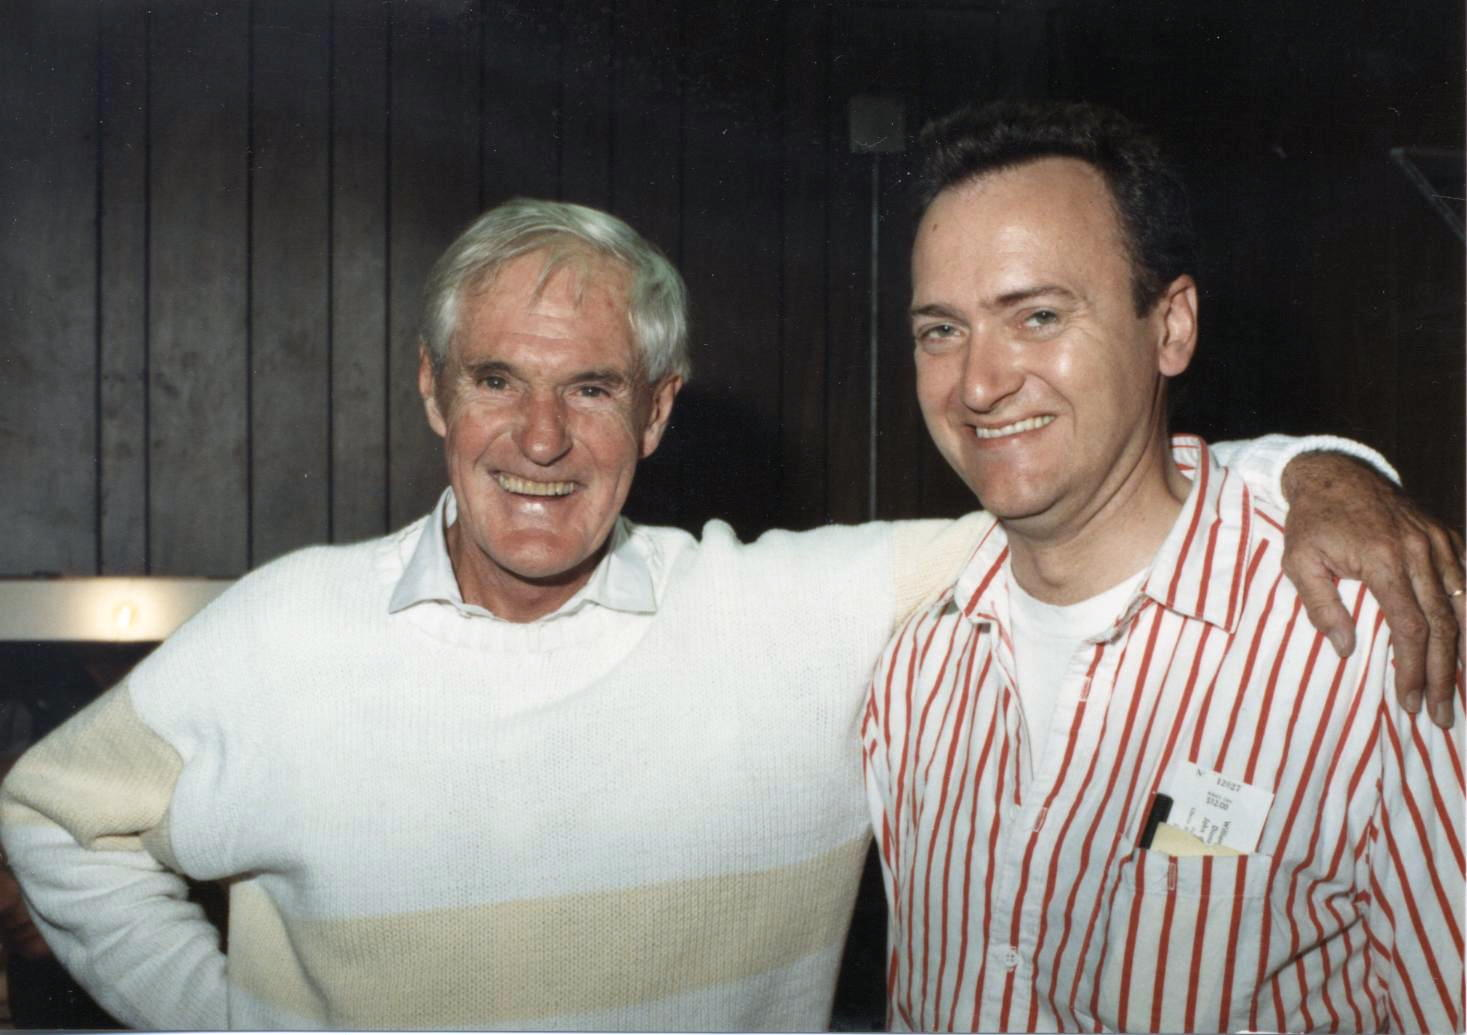 [Dr. Timothy Leary and George Laughead Jr., Liberty Hall, Lawrence, Kansas. Back stage after Dr. Timothy's performance at the River City Union, September 12, 1987. Photograph by Doug L. Miller: used with permission.]